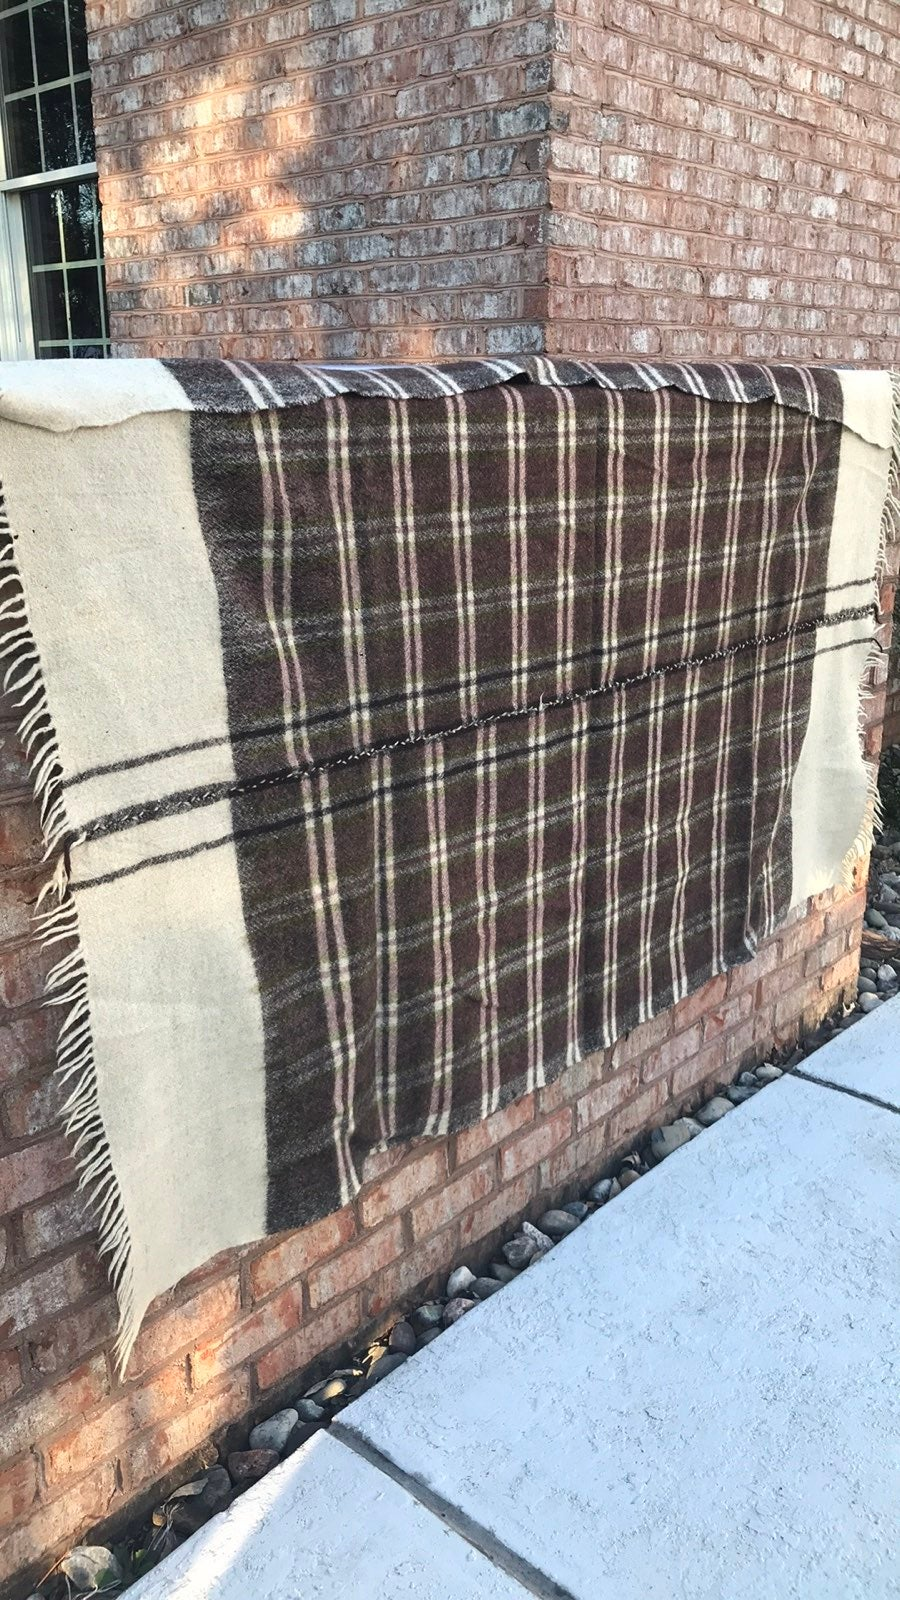 Woven wool Blanket (made by hand)